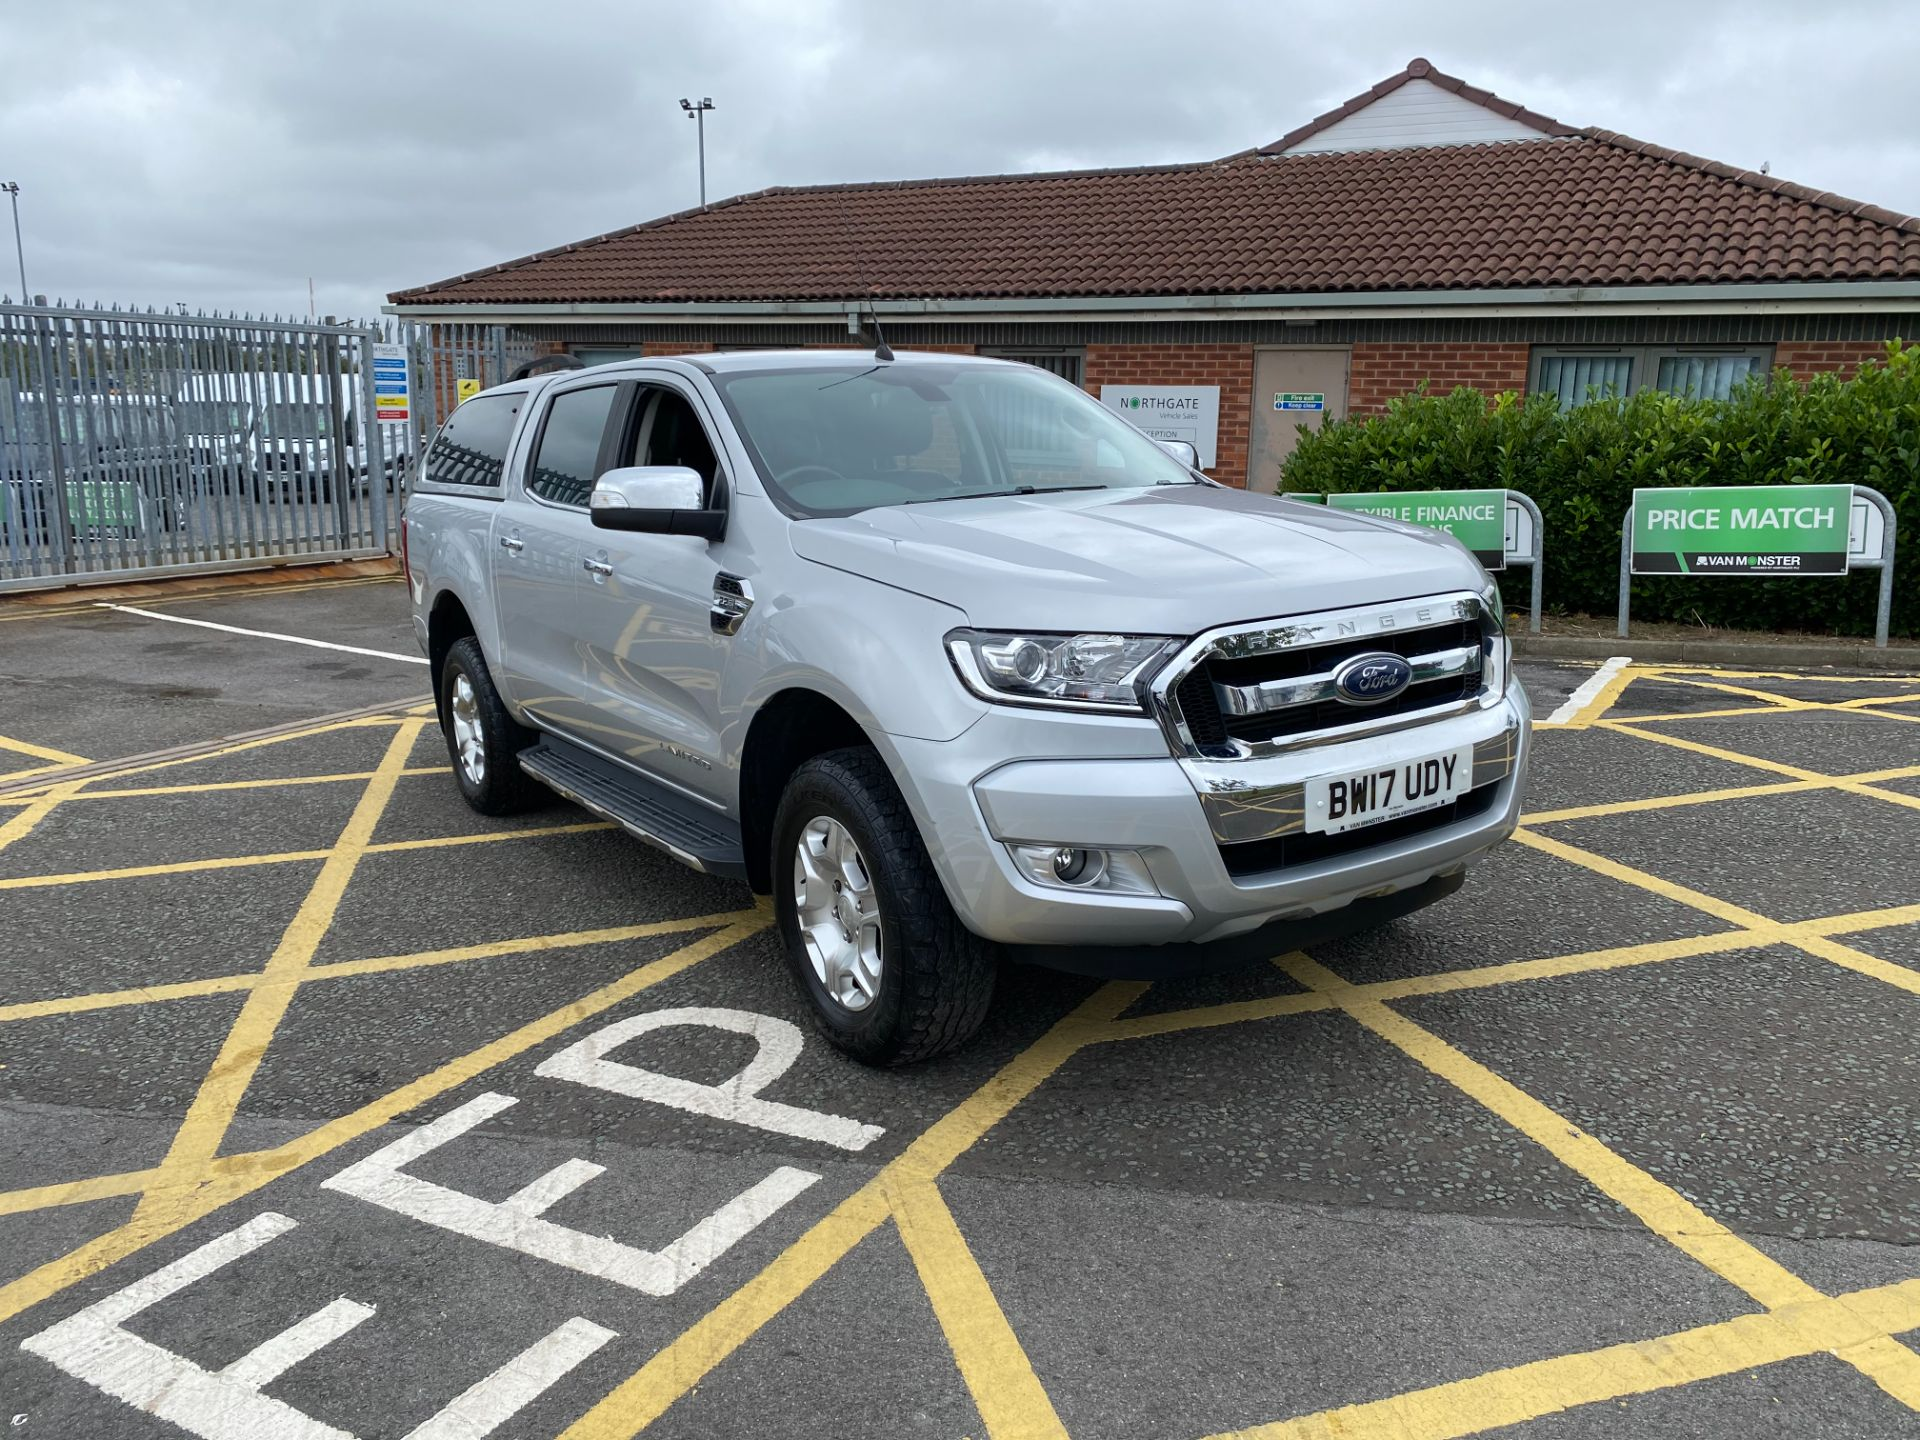 2017 Ford Ranger Pick Up Double Cab Limited 1 2.2 Tdci (BW17UDY)